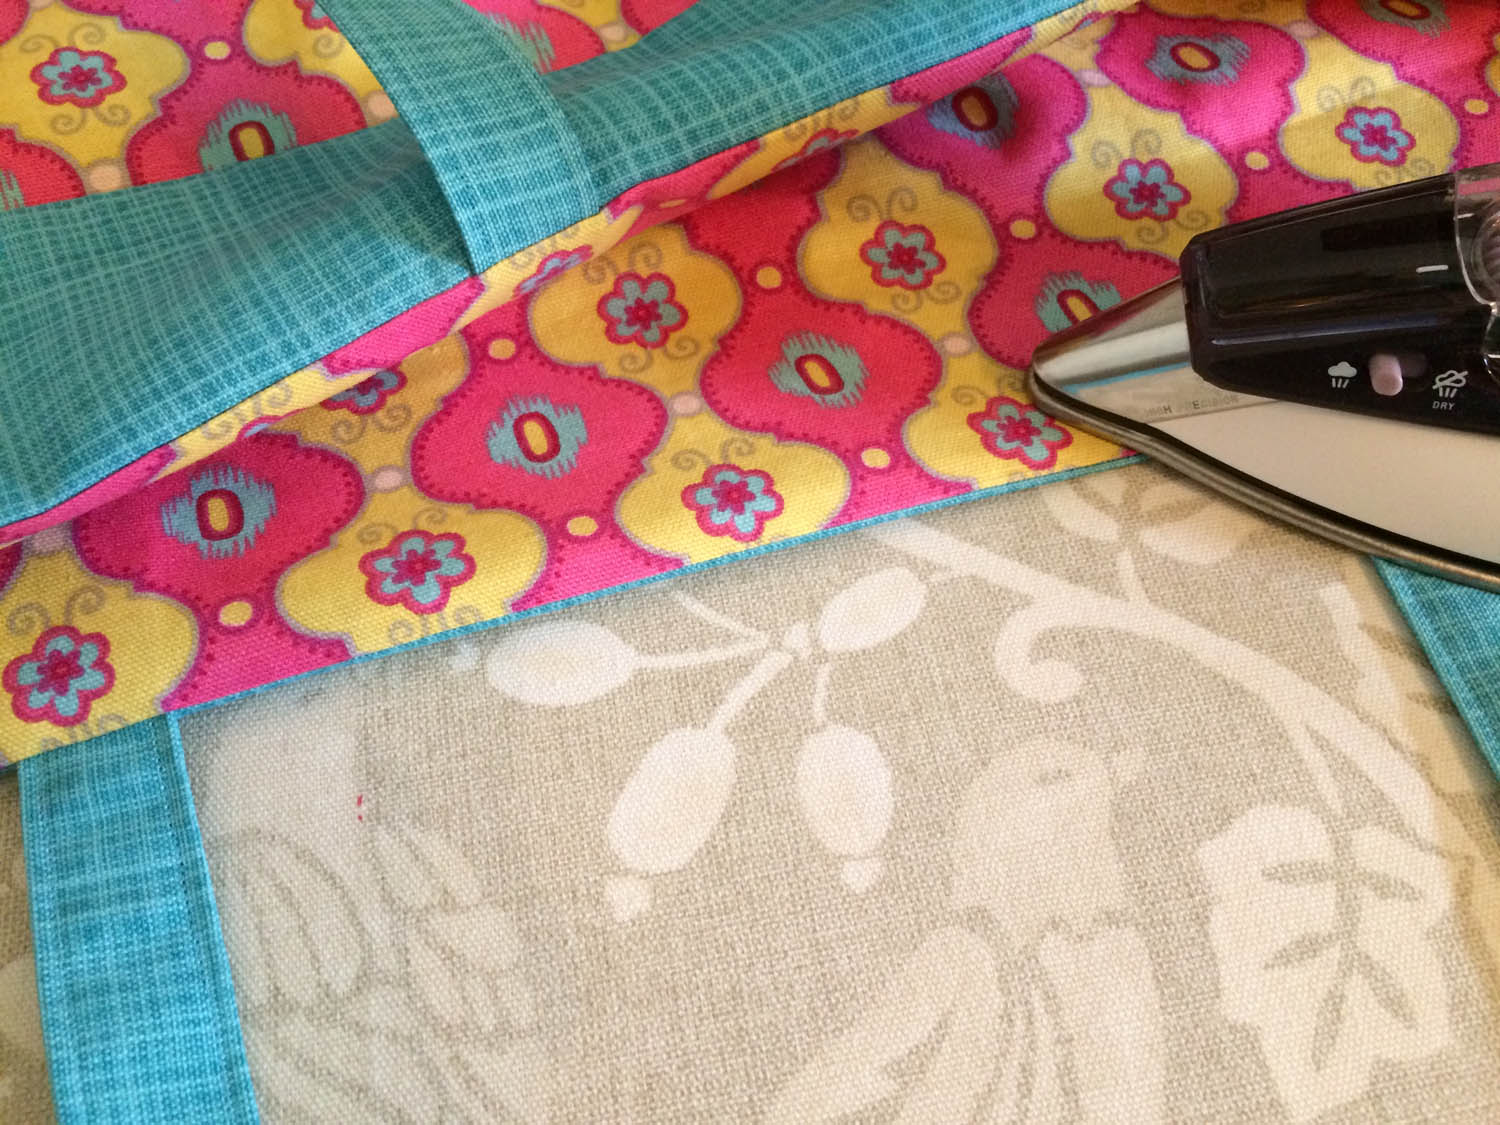 pressing the upper edge of the tote before edge stitching for a clean line